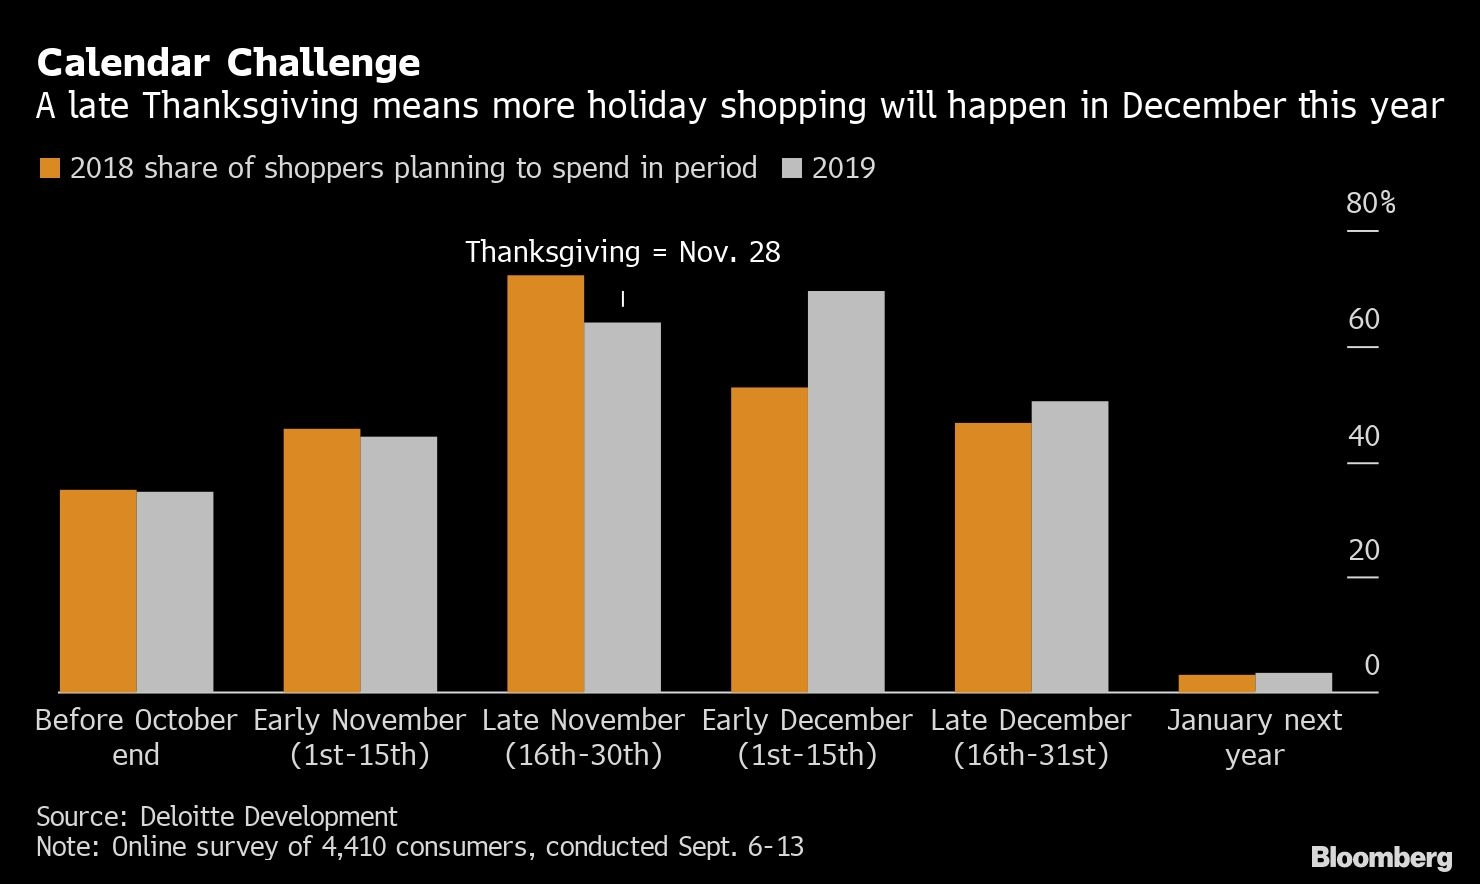 Thanksgiving is becoming one of the most popular days to shop online